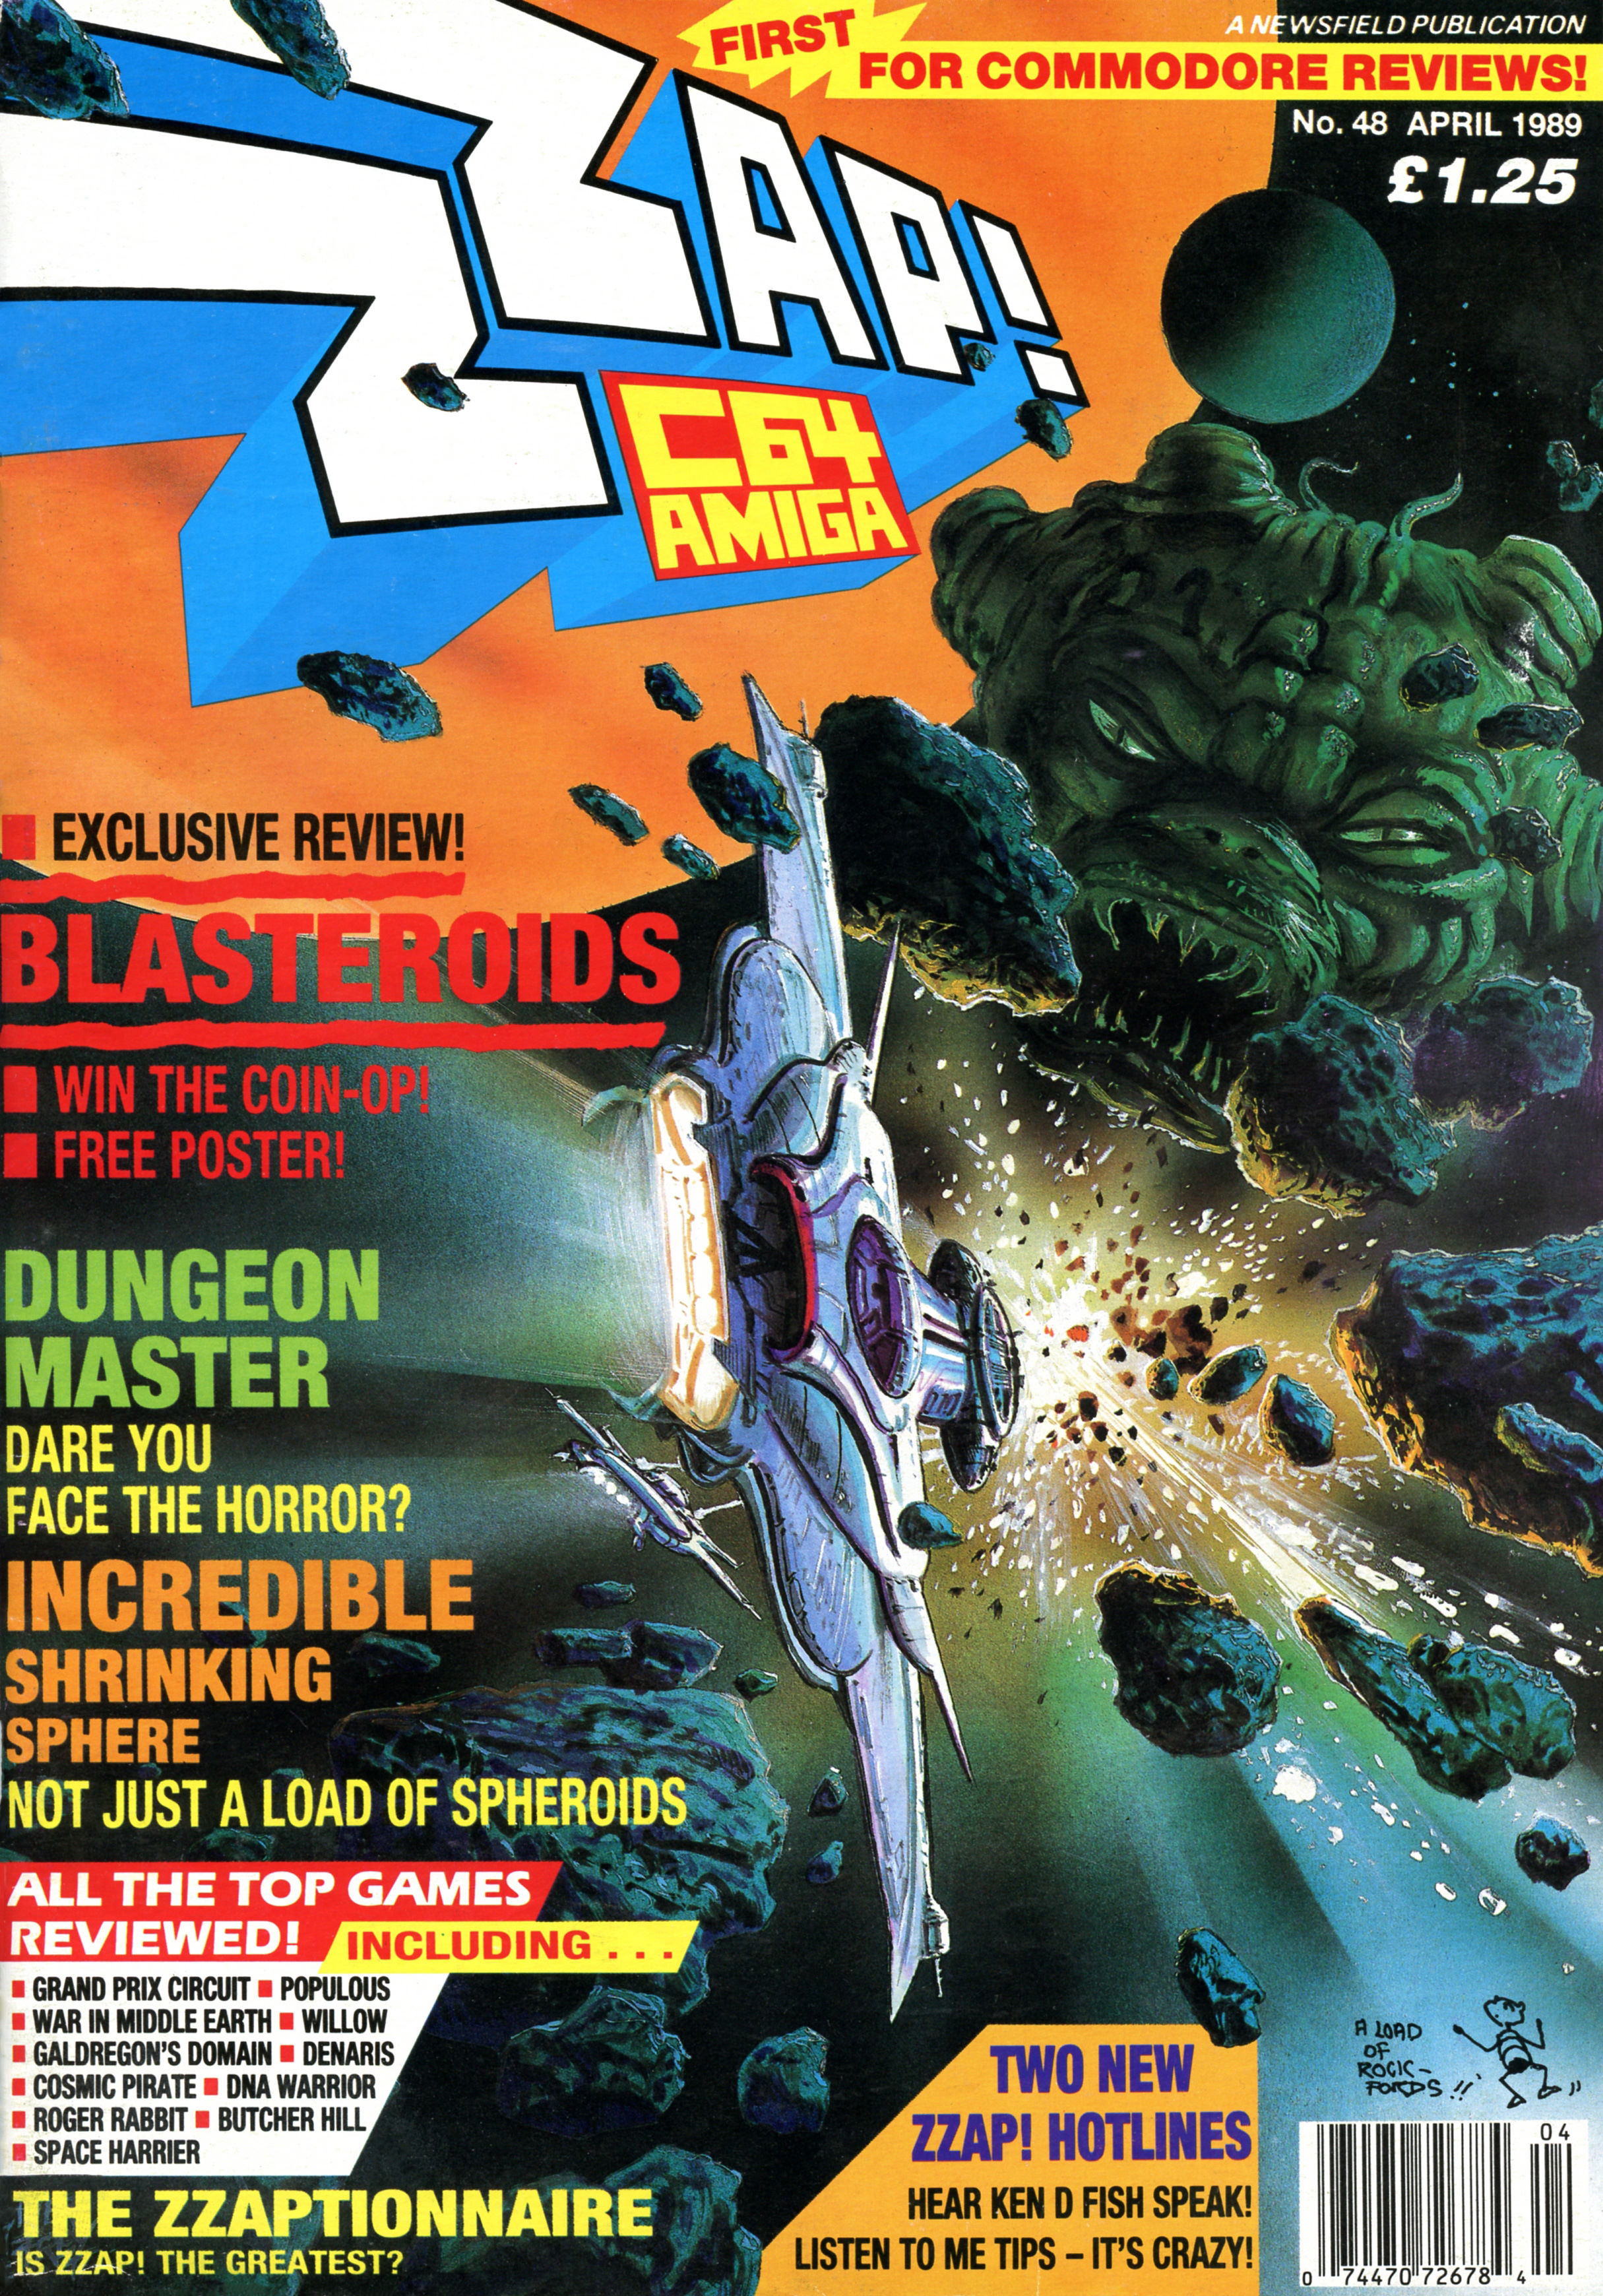 Dungeon Master for Amiga Cover published in British magazine 'Zzap', Issue #48 April 1989